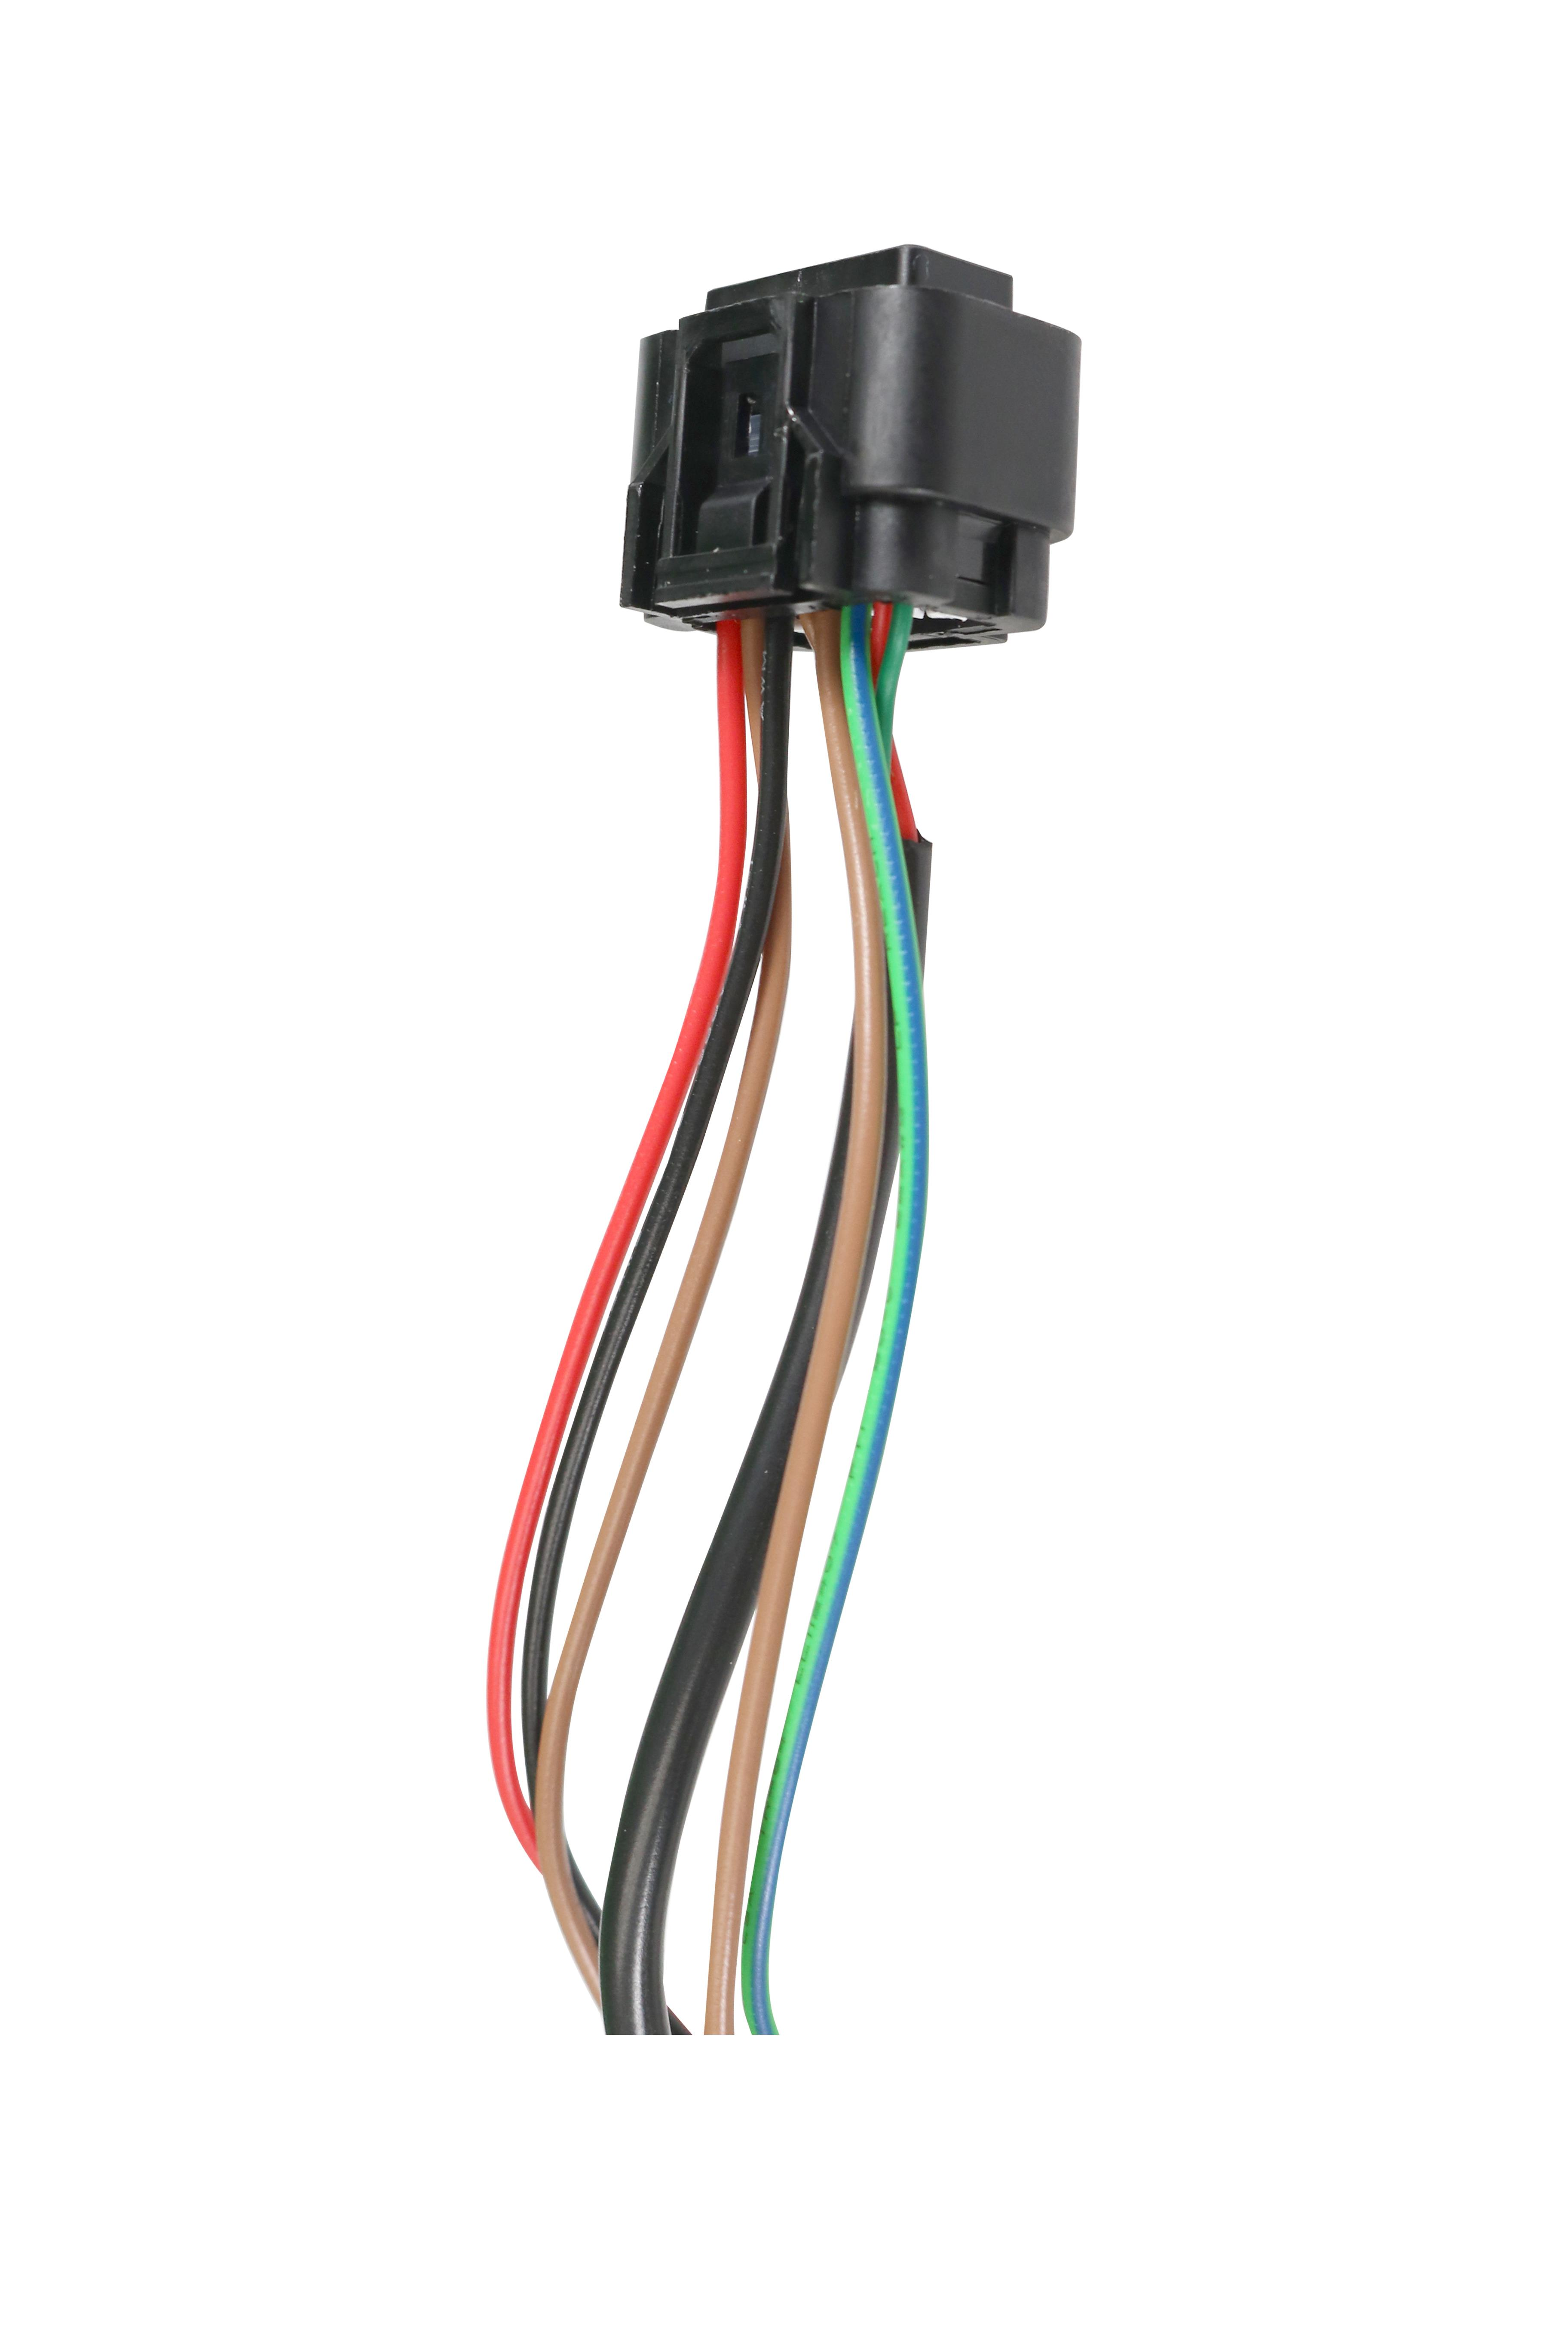 Digital Elite LED Water Proof Volt Meter Wire Harness